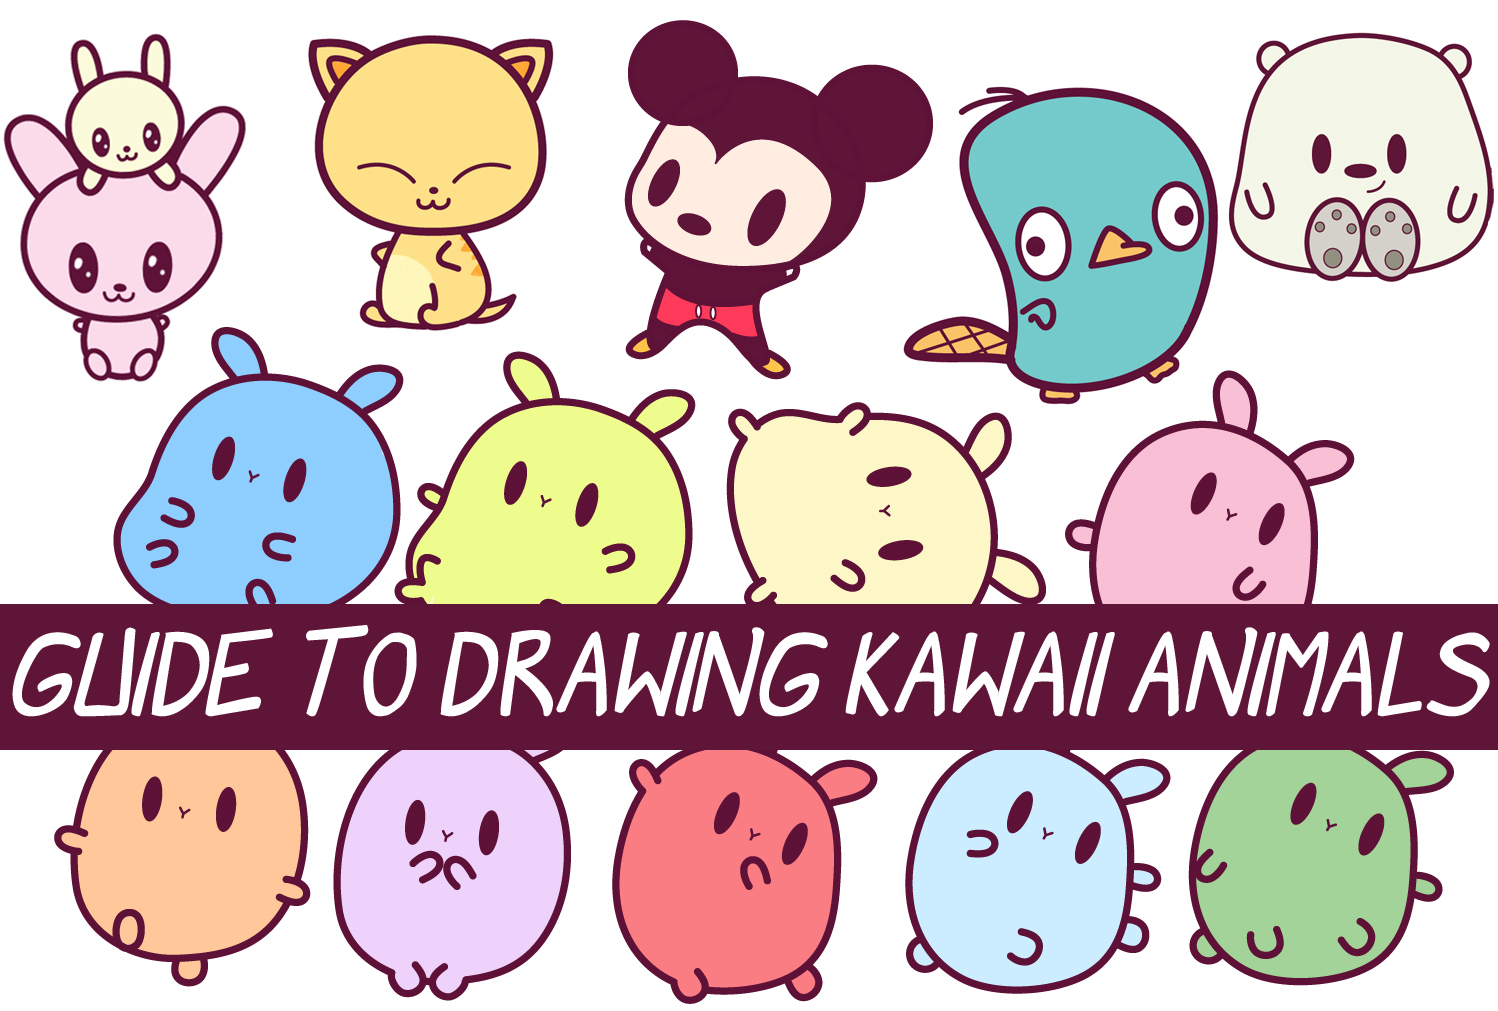 Image of: Baby Animals Easy Guide To Drawing Kawaii Characters Part How To Draw Kawaii Animals Critters Expressions Faces Body Poses Drawing How To Draw Easy Guide To Drawing Kawaii Characters Part How To Draw